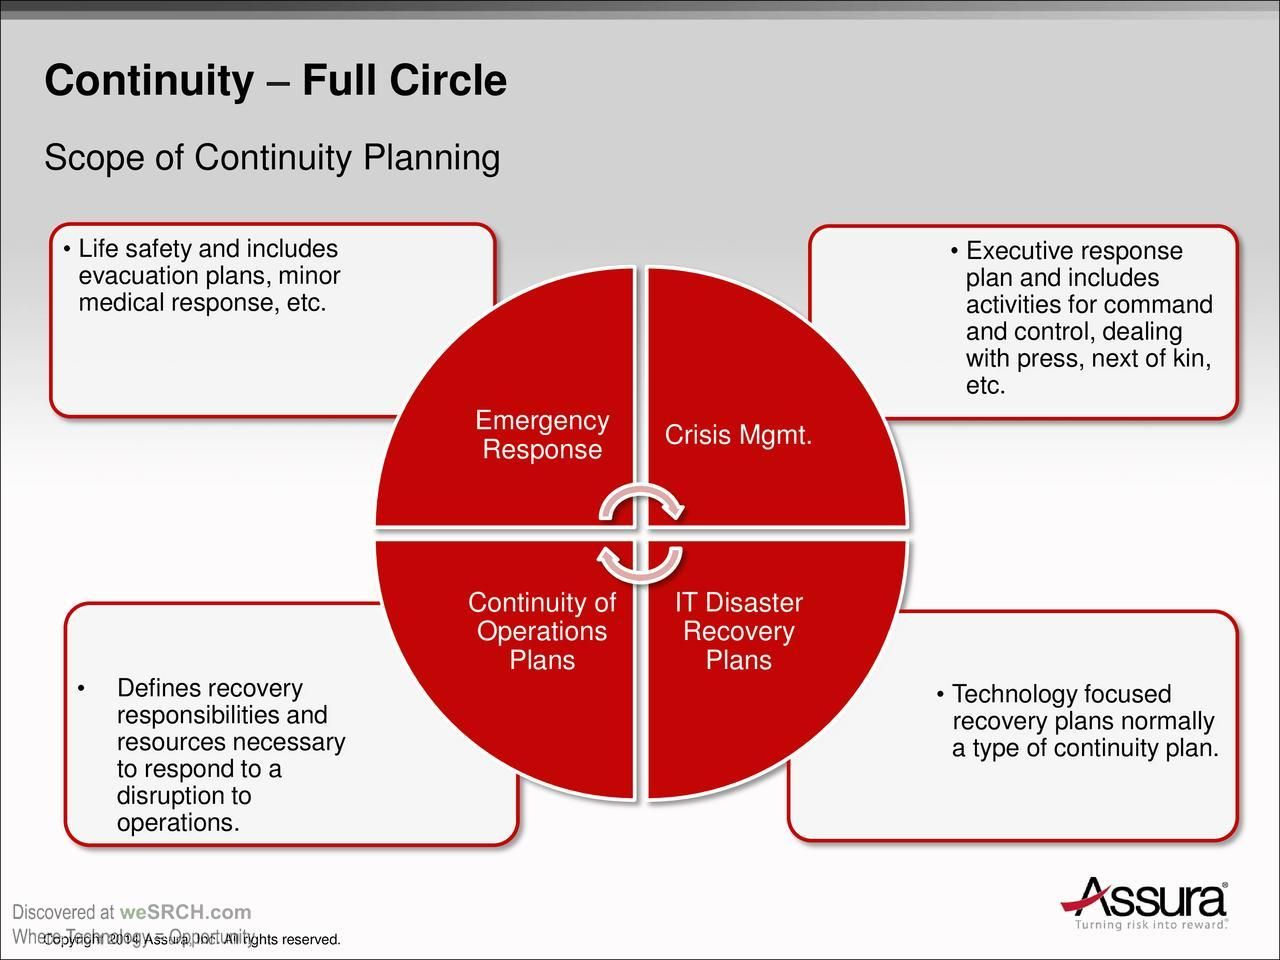 Full Circle For The Continuity Planning And Their Scope Like Life